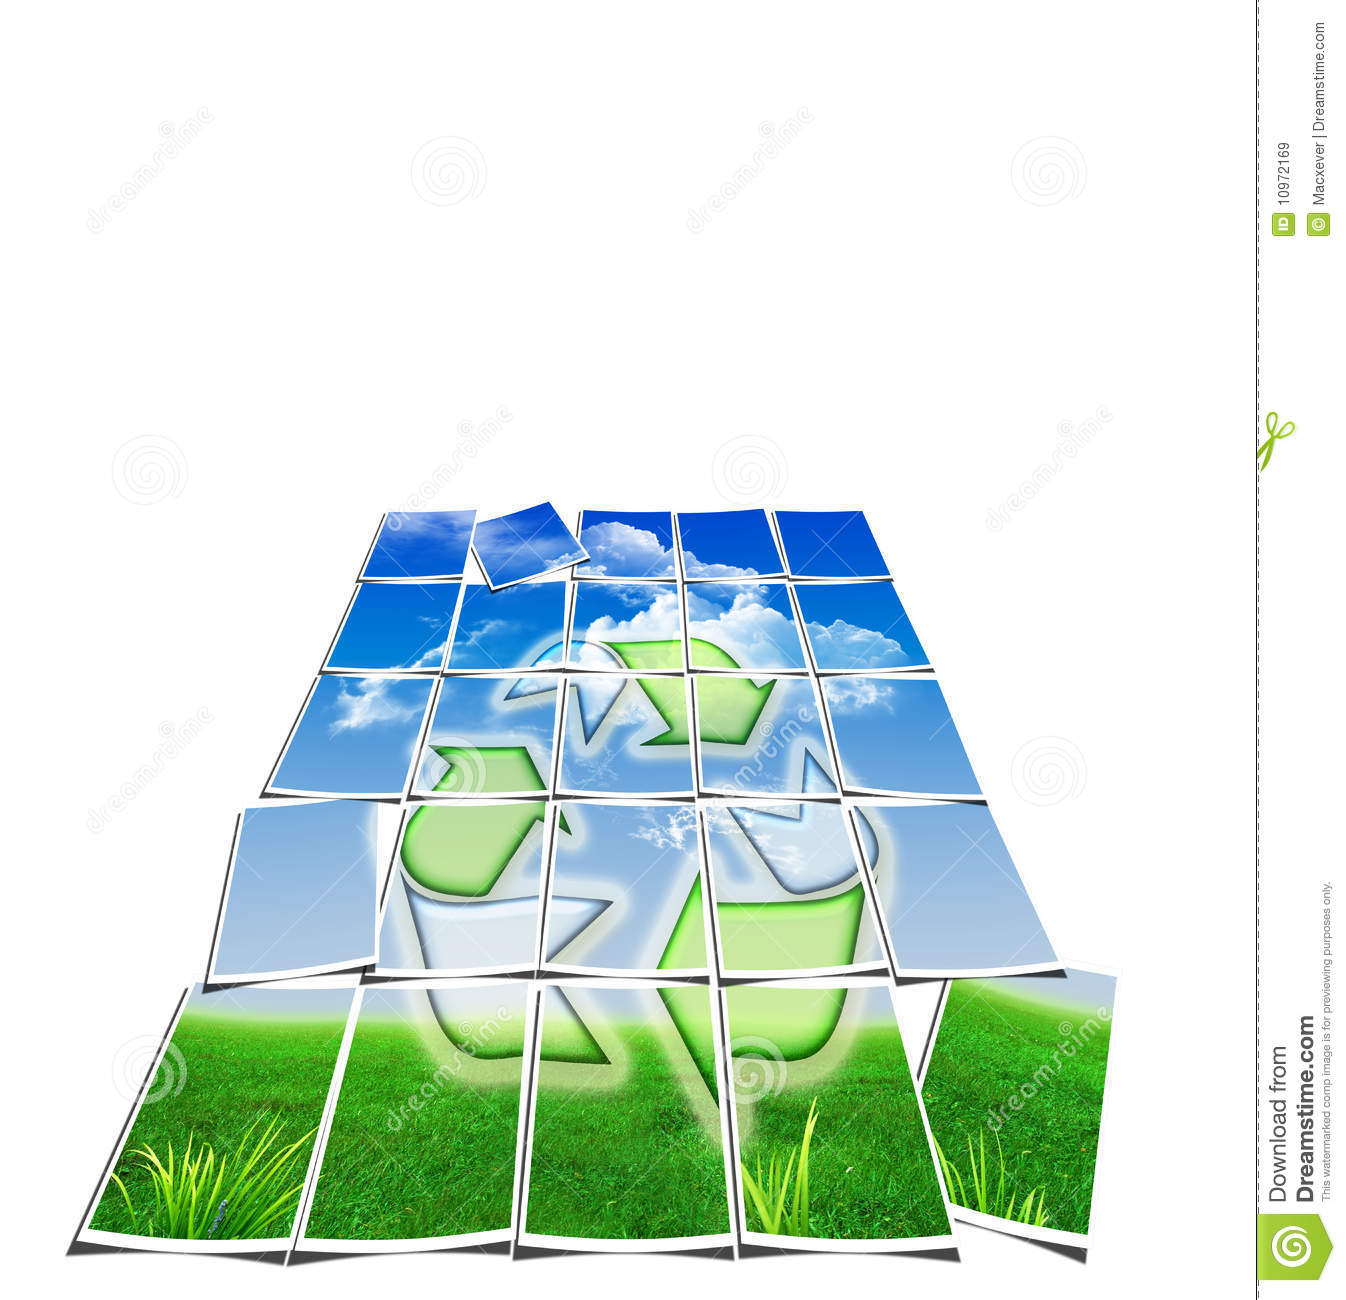 Recycle Symbol Wallpaper - Air, Water, Earth Royalty Free Stock Images ...